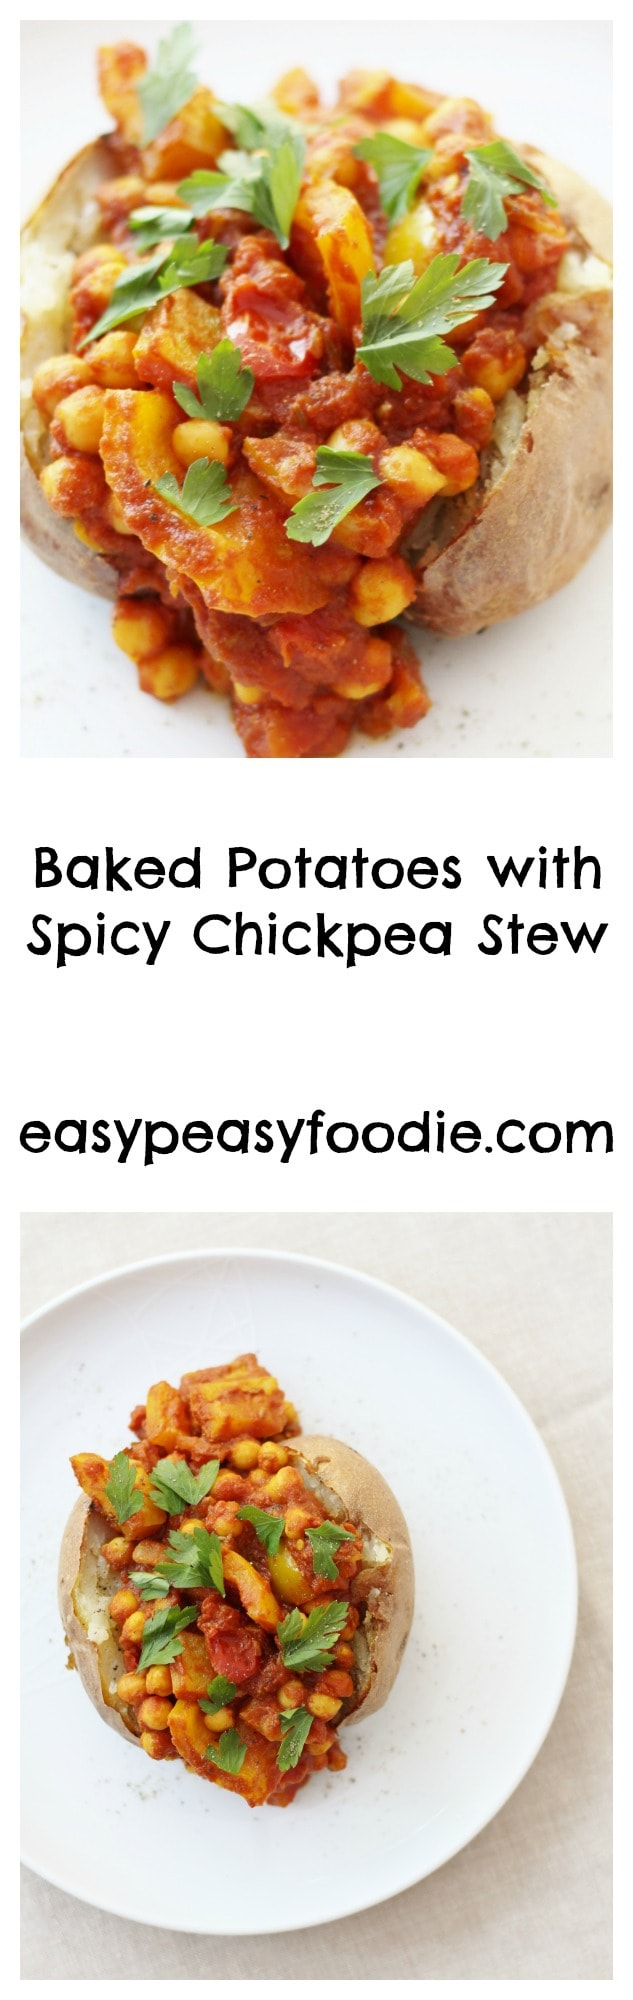 Baked Potatoes with Spicy Chickpea Stew - pinnable image with text for Pinterest